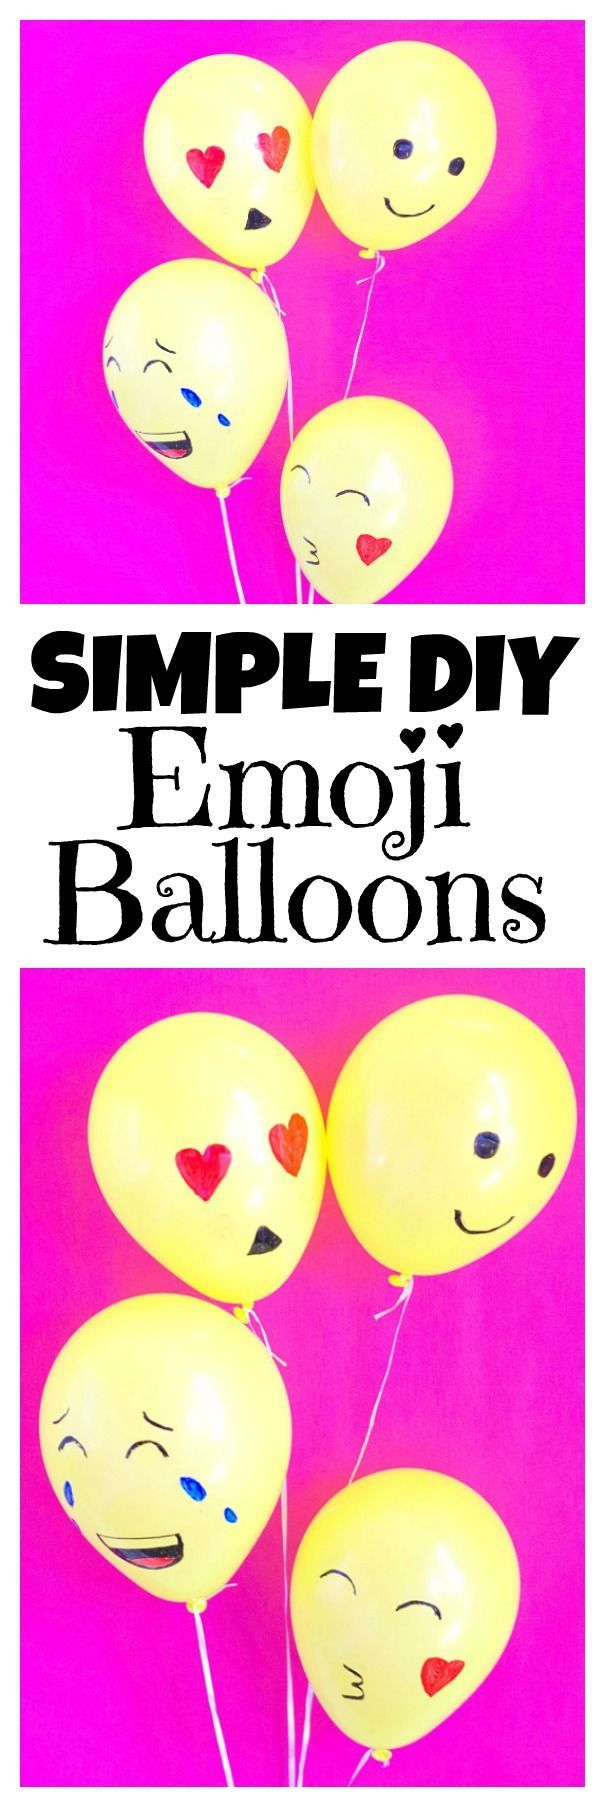 Simple diy emoji balloons are such a fun and easy diy for an emoji party. You can make these balloons in minutes then enjoy your emoji party!